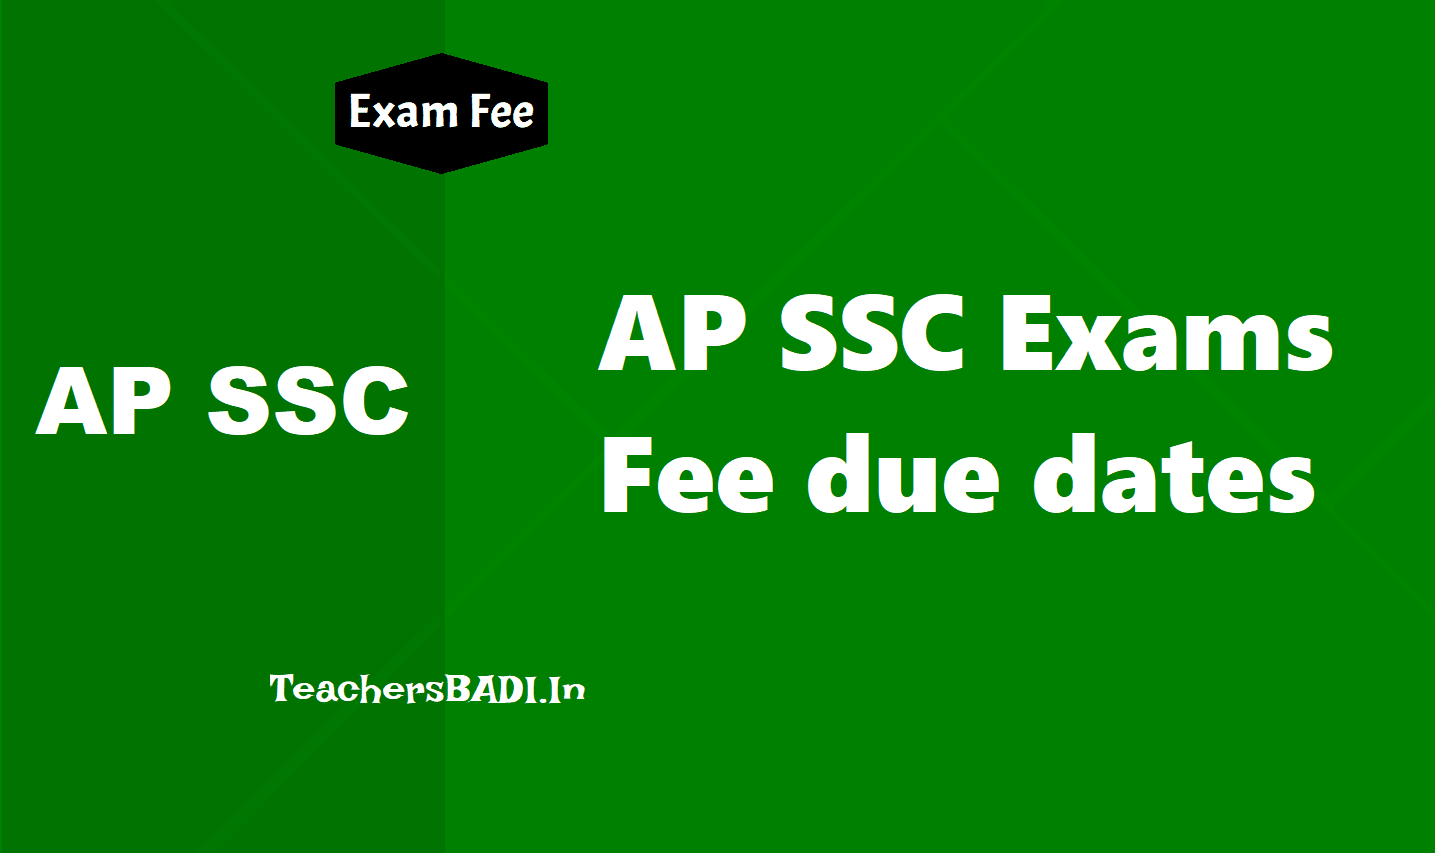 AP SSC 2019 Exams Fee due dates / Schedule, How to pay at